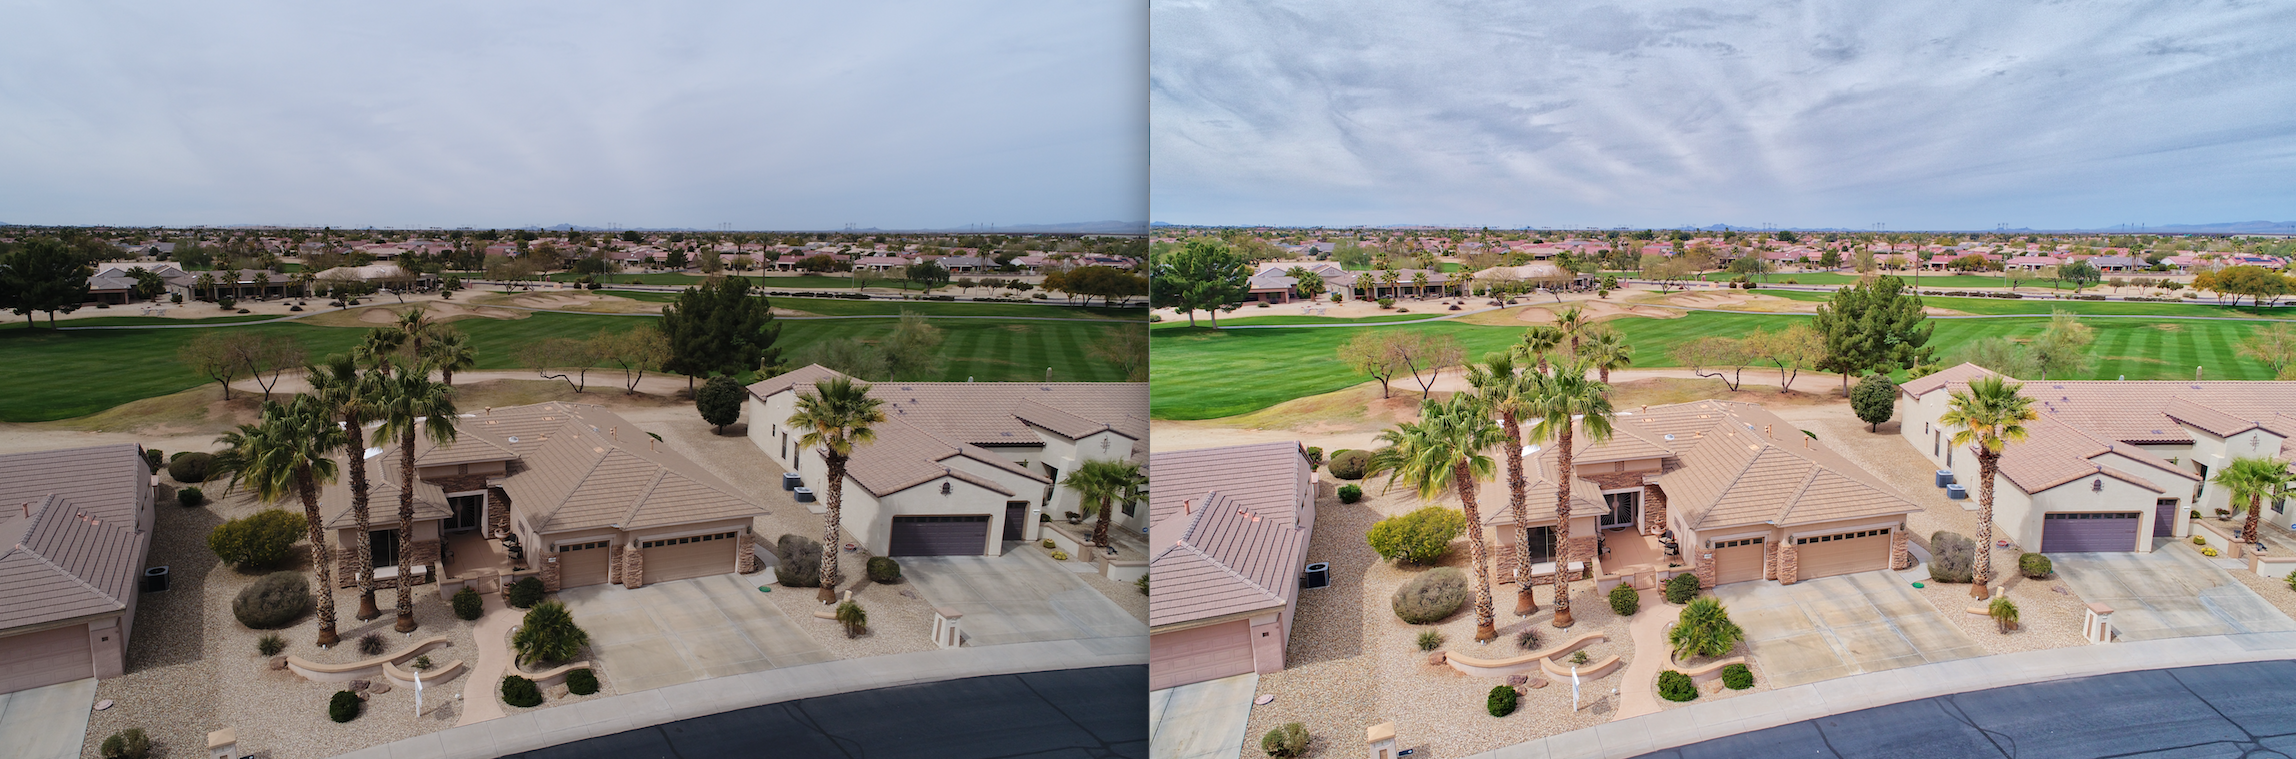 Premier UAV Aerial Residential  Real Estate Services - Before and After